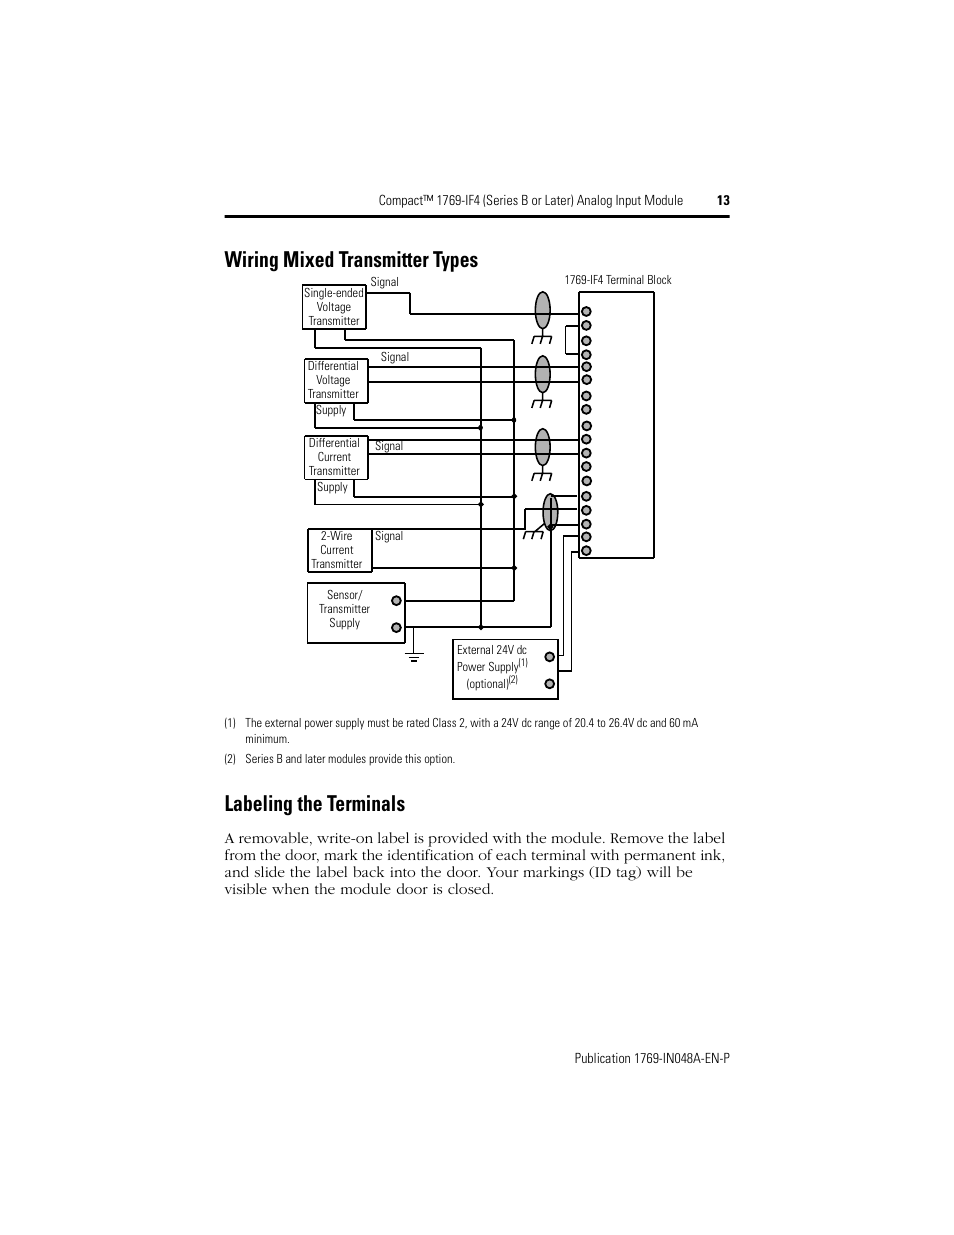 medium resolution of wiring mixed transmitter types labeling the terminals rockwell automation 1769 if4 compact series b or later analog input module user manual page 13